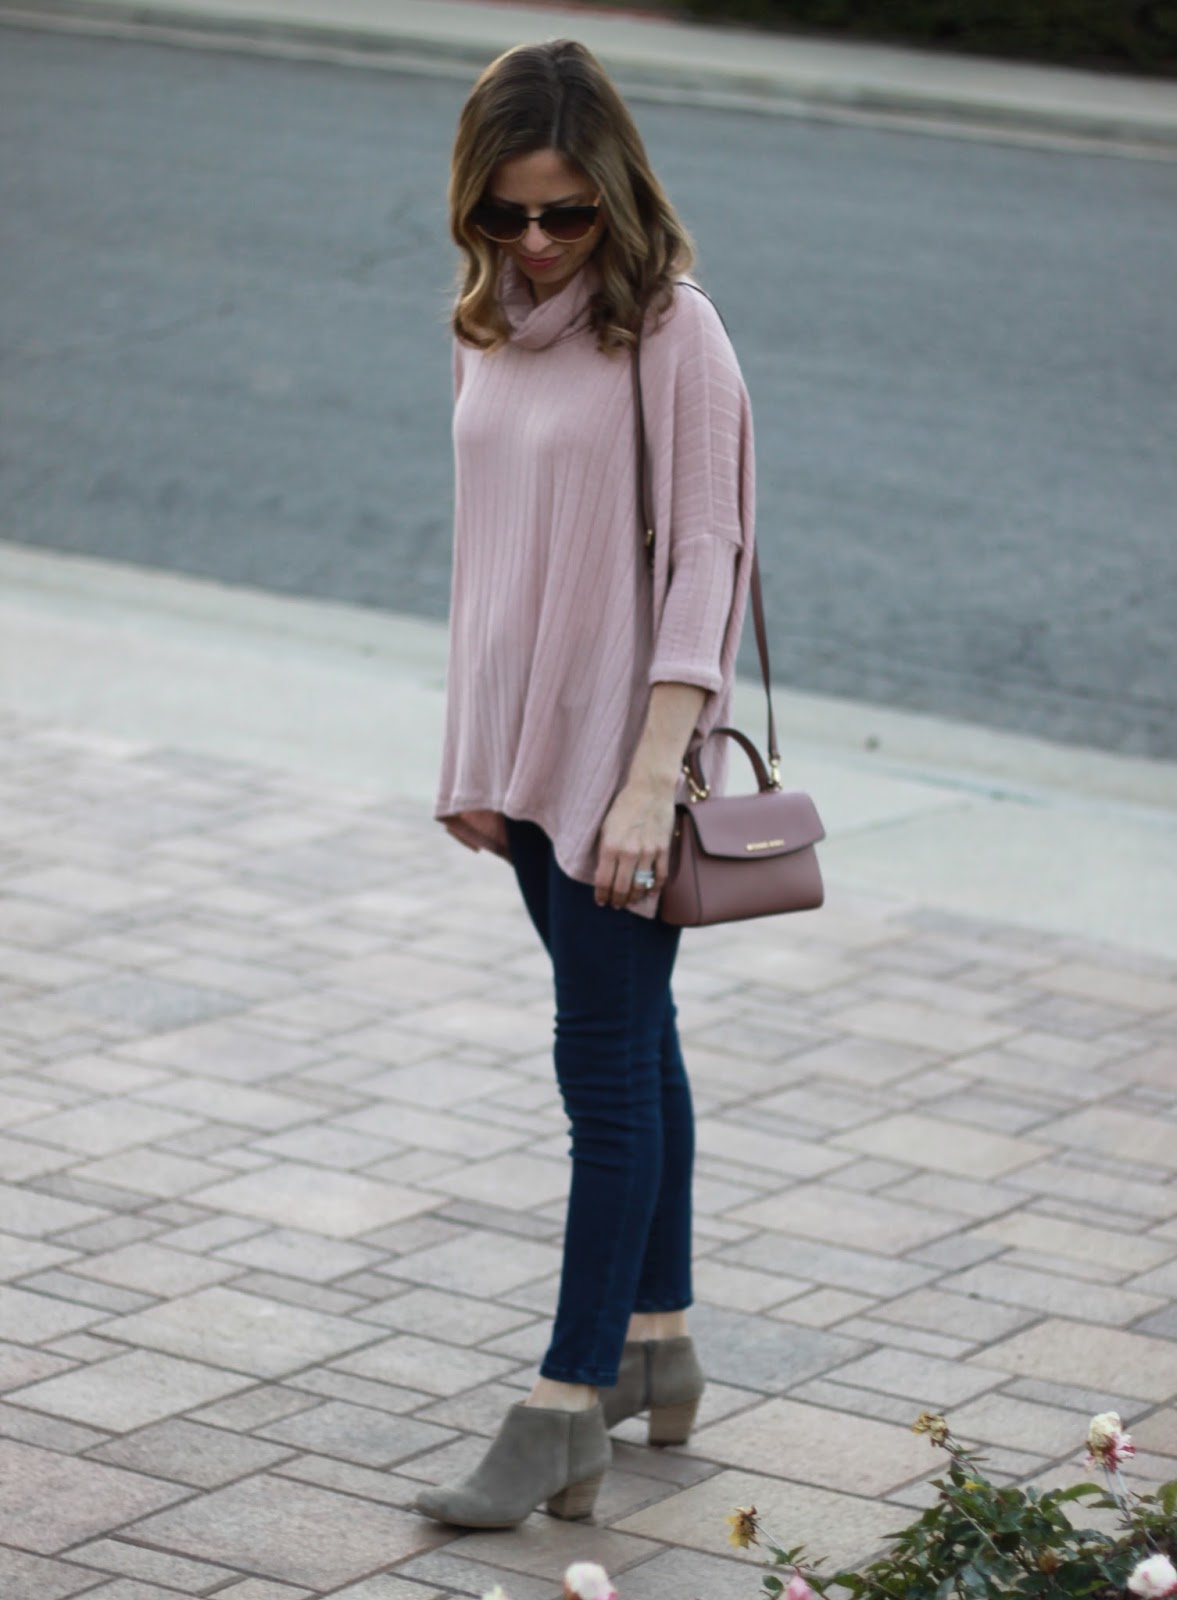 skinny jeans and bootie outfit